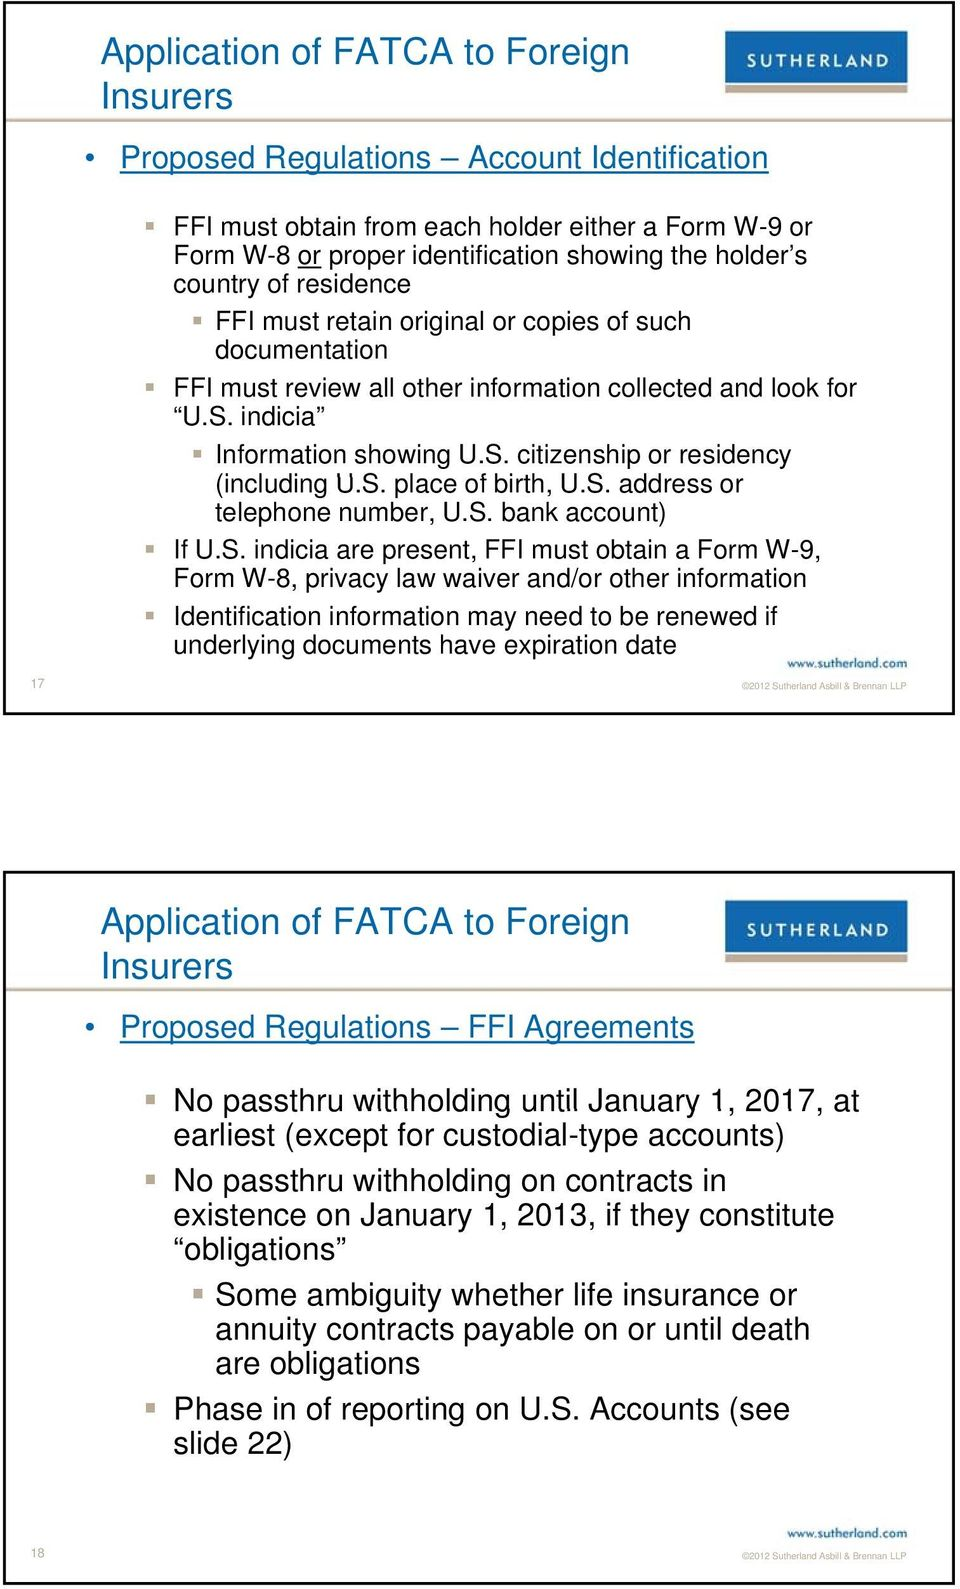 S. bank account) If U.S. indicia are present, FFI must obtain a Form W-9, Form W-8, privacy law waiver and/or other information Identification information may need to be renewed if underlying